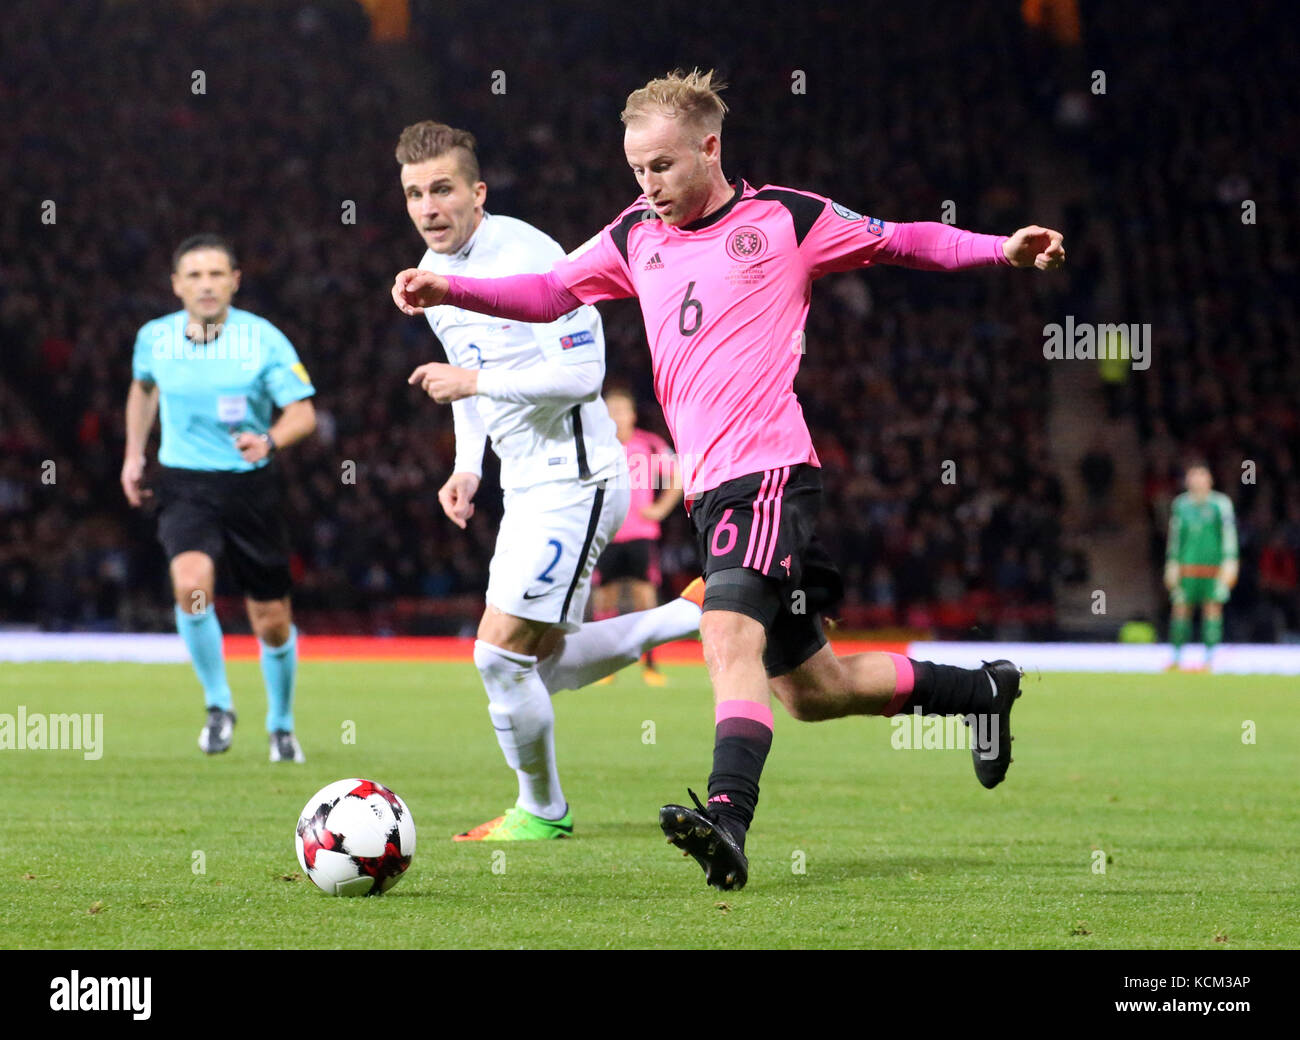 Scotland S Barry Bannan Right And Slovakia Peter Pekarik Battle For The Ball During 2018 Fifa World Cup Qualifying Group F Match At Hampden Park